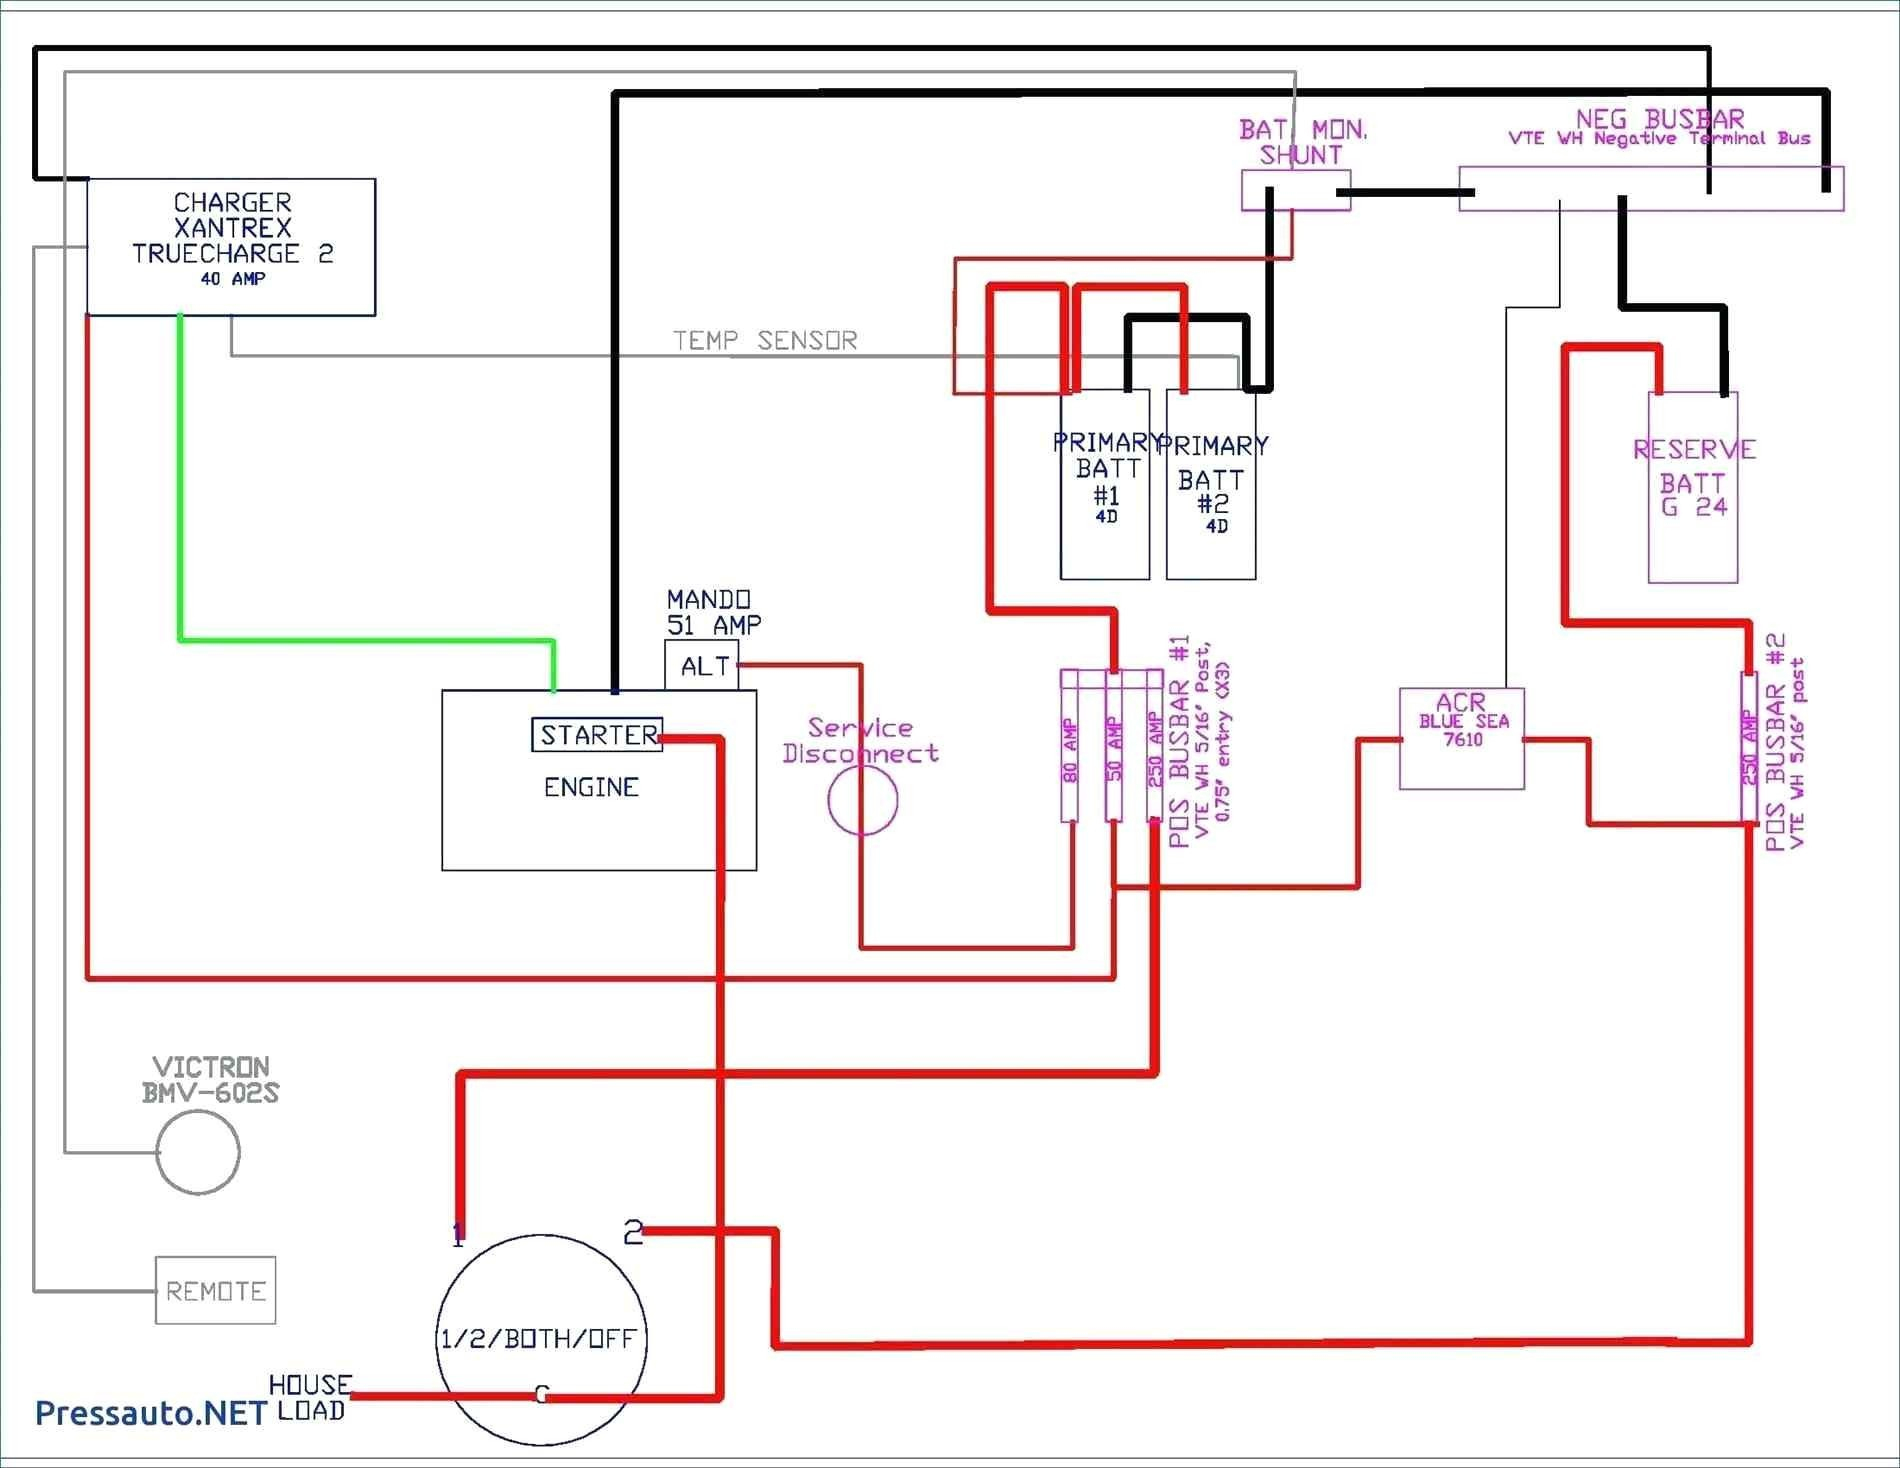 Storage Wiring Building Electrical Circuitmap - Wiring Diagrams Hubs - Home Electrical Wiring Diagram